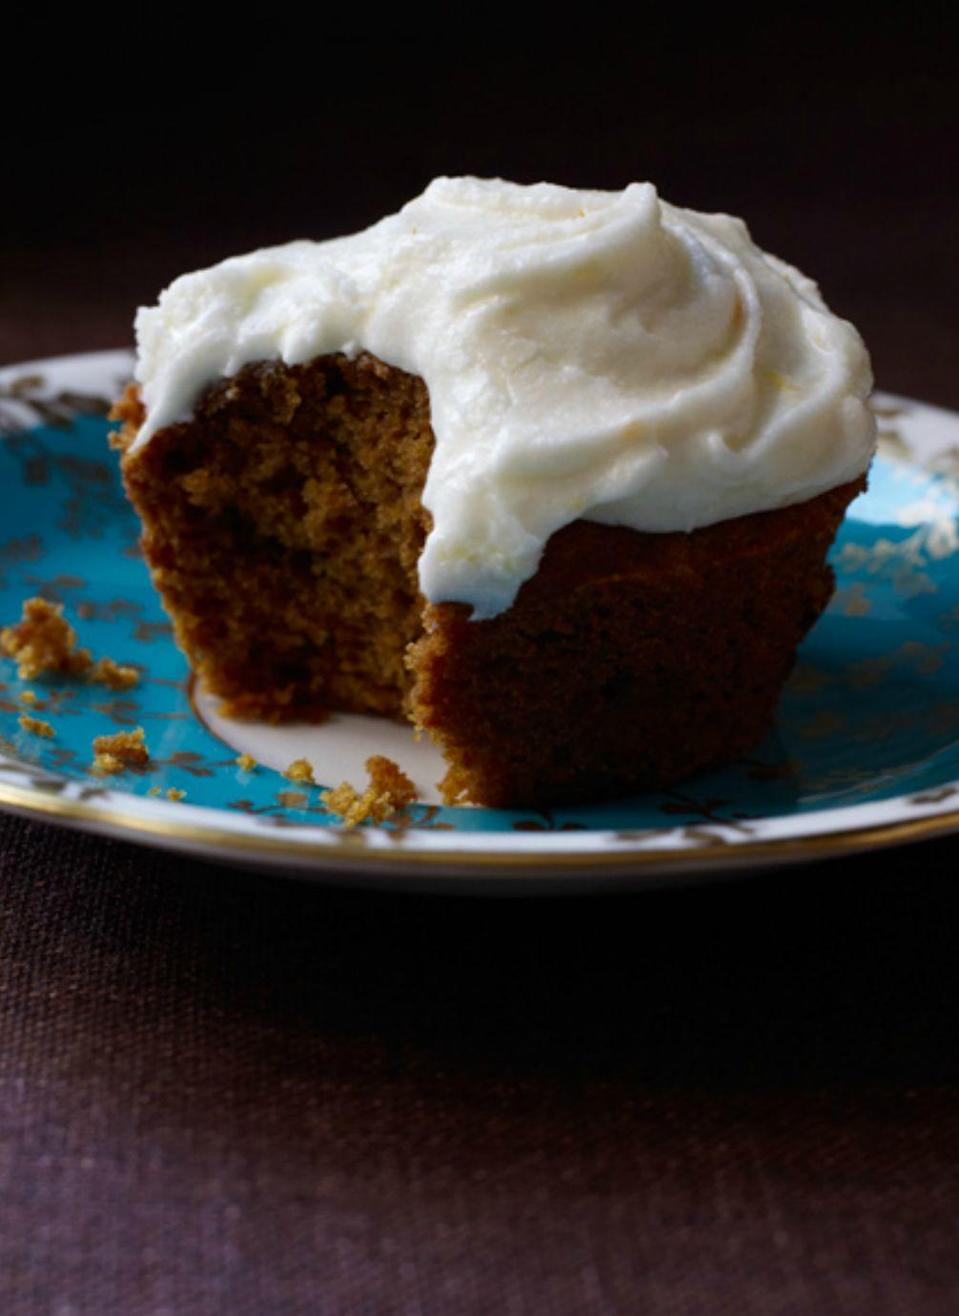 "<p>Pumpkin cakes usually get a cream cheese frosting, but try this sumptuous sour cream instead and you may never see this dessert the same. </p><p><em><strong><a href=""https://www.womansday.com/food-recipes/food-drinks/recipes/a11708/pumpkin-spice-cupcakes-orange-sour-cream-frosting-recipe-124672/"" rel=""nofollow noopener"" target=""_blank"" data-ylk=""slk:Get the Pumpkin Spice Cupcakes with Orange Sour Cream Frosting recipe."" class=""link rapid-noclick-resp"">Get the Pumpkin Spice Cupcakes with Orange Sour Cream Frosting recipe. </a></strong></em></p>"